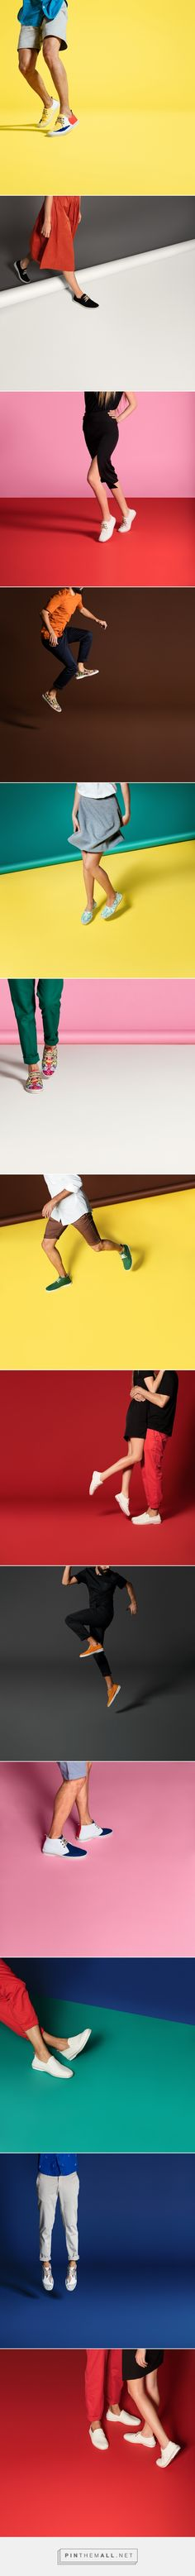 Arrels Barcelona on Behance by Hey studio... - a grouped images picture - Pin Them All